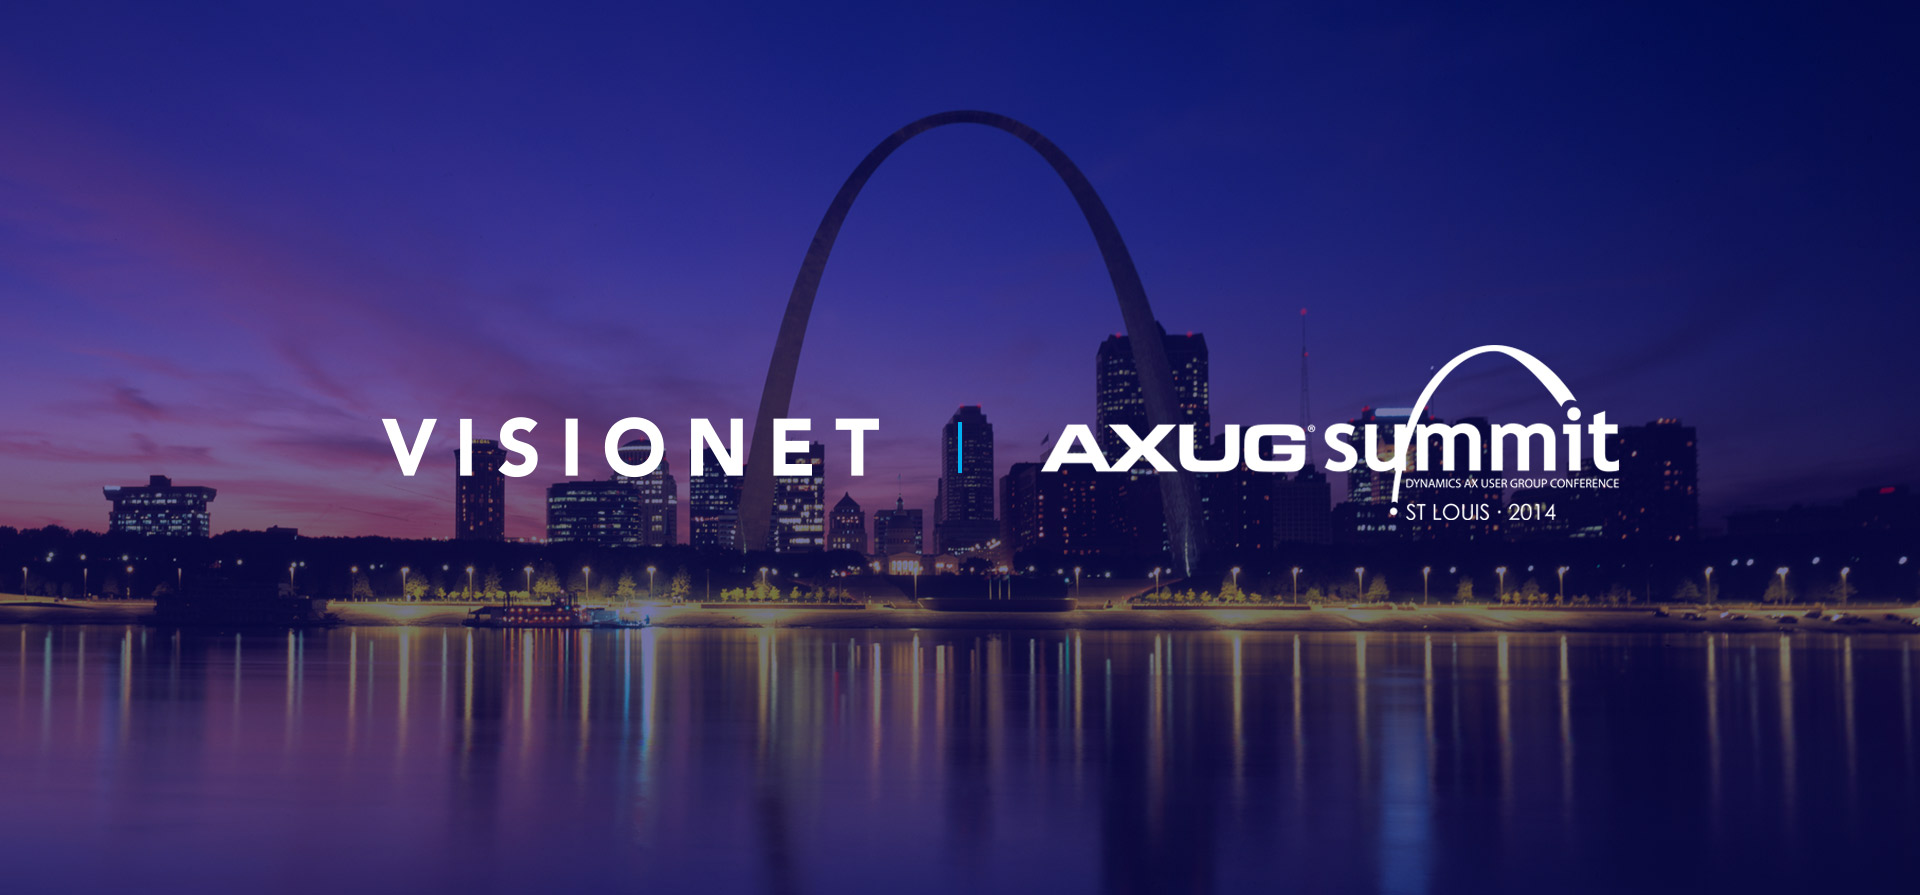 Visionet to Participate in AXUG Summit 2014 as Gold Sponsor and Host a Partner Showcase Event